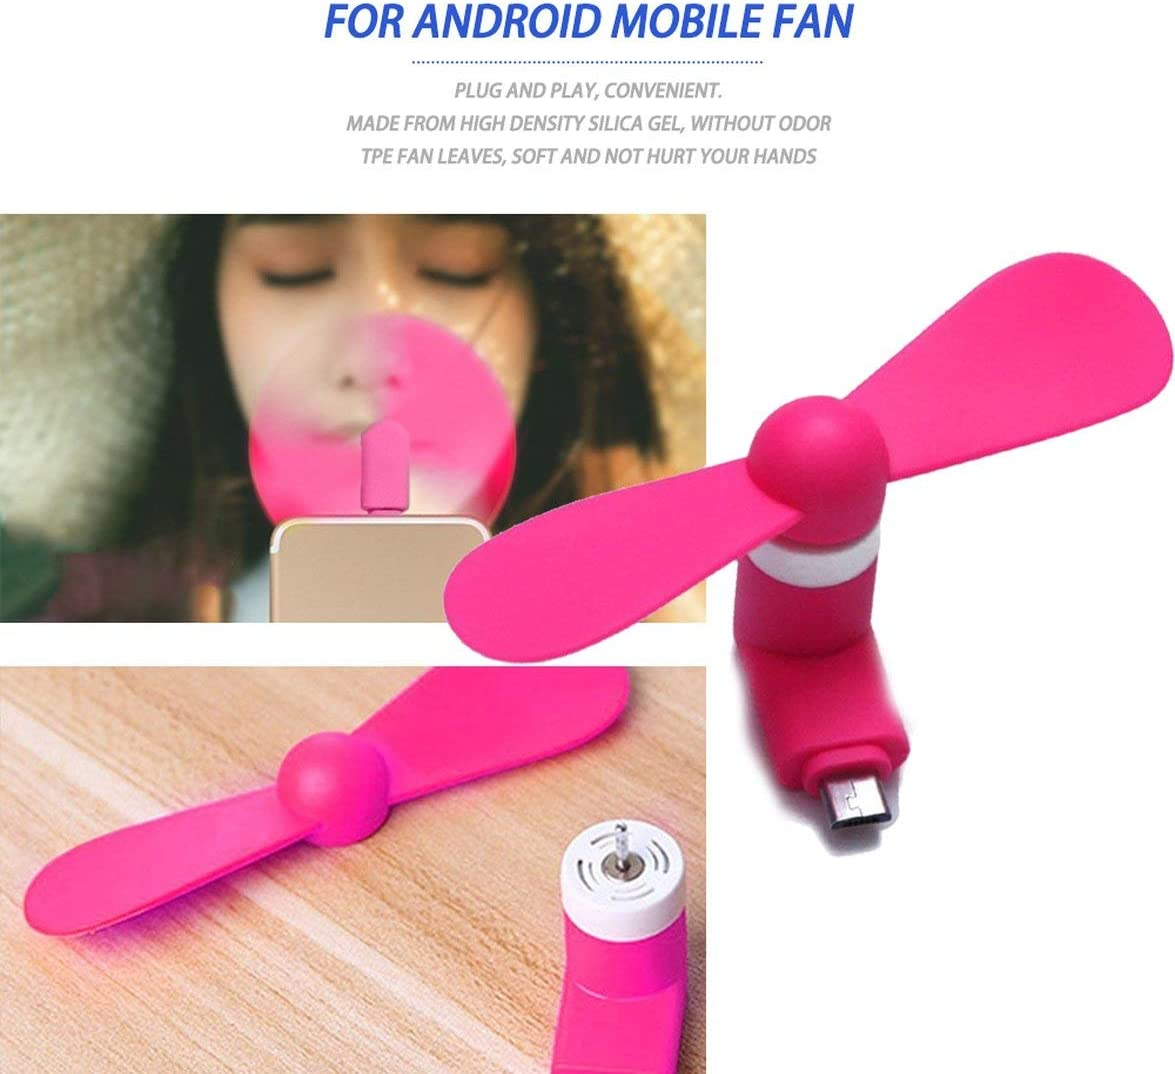 for Android Portable Cool Micro USB Fan 5V 1W Mobile Phone USB Fans Low Voice for Android Mobile Phone USB Power Supply